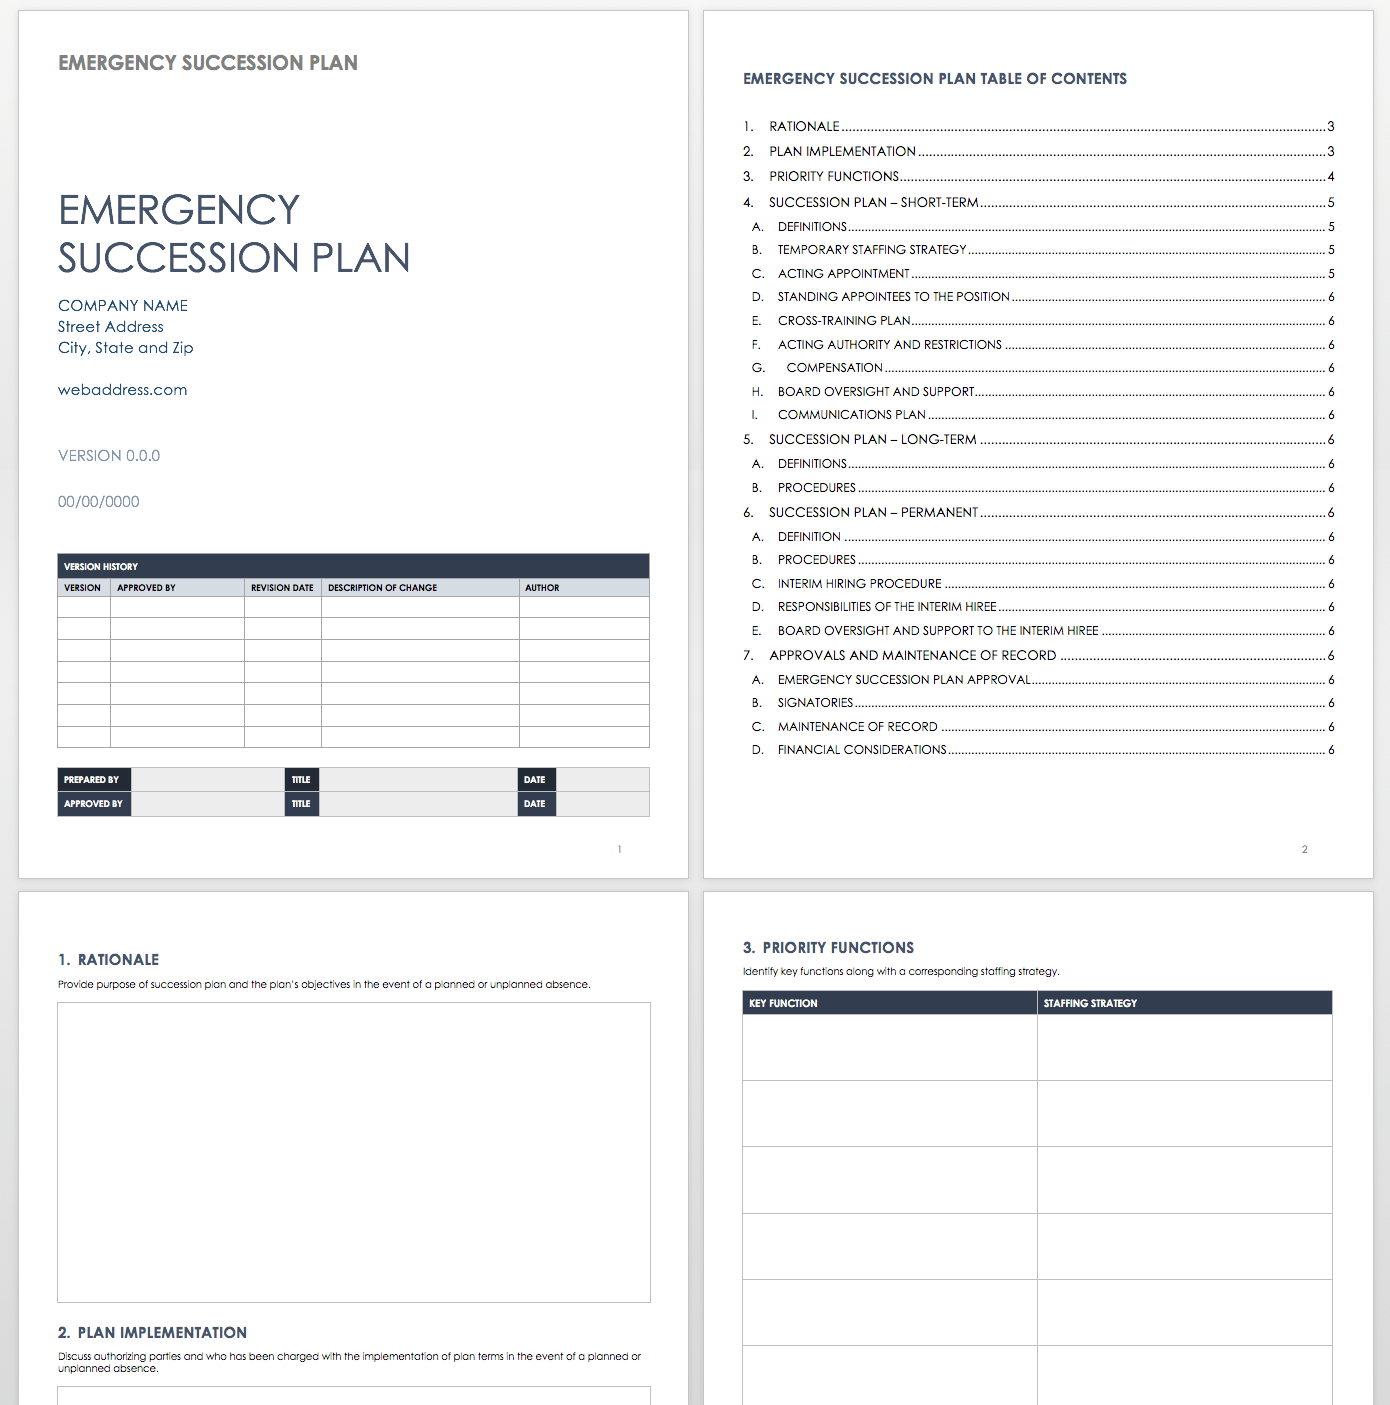 Letters Of Succession Planning Template Excel Intended For Succession Planning Template Excel Examples